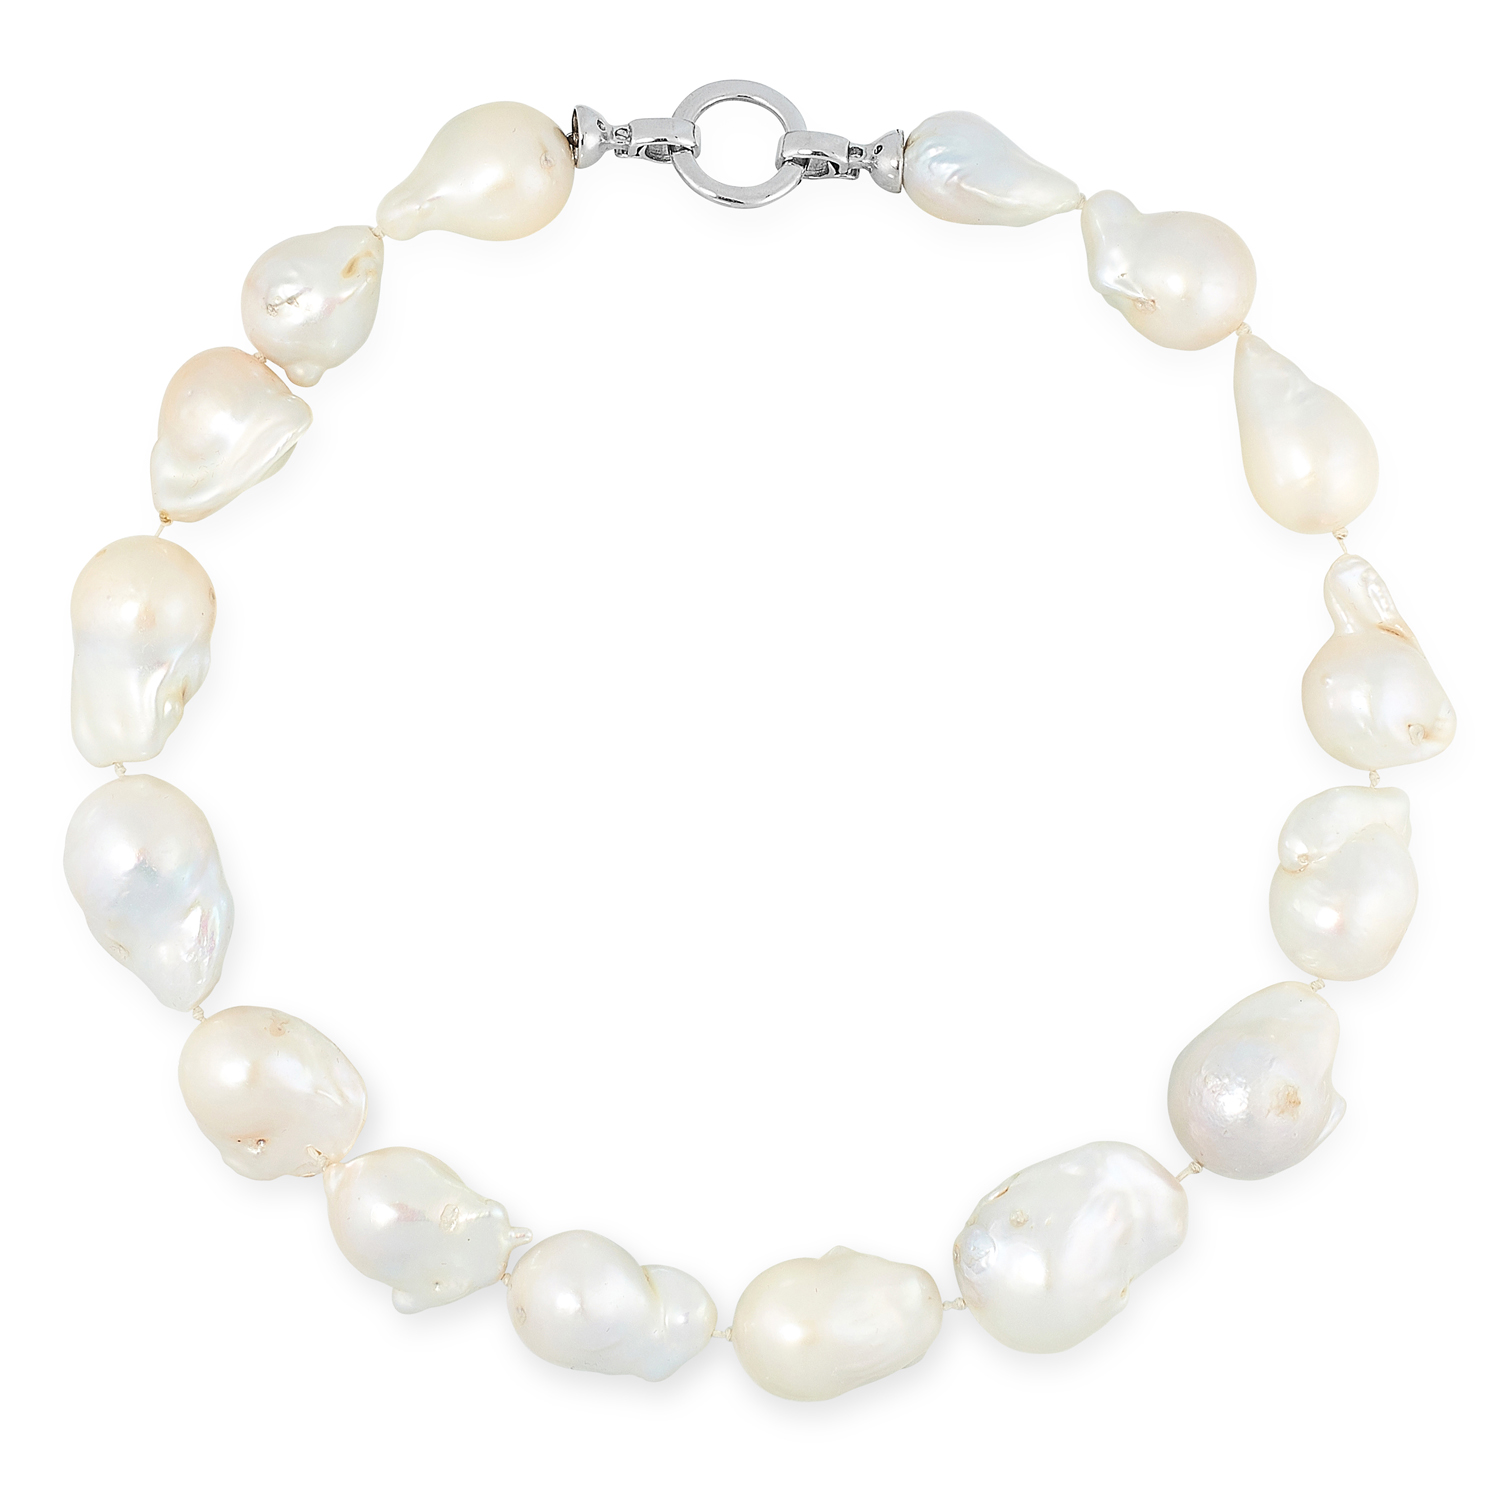 A BAROQUE PEARL NECKLACE comprising of a single row of sixteen baroque pearls, 44cm, 133g.